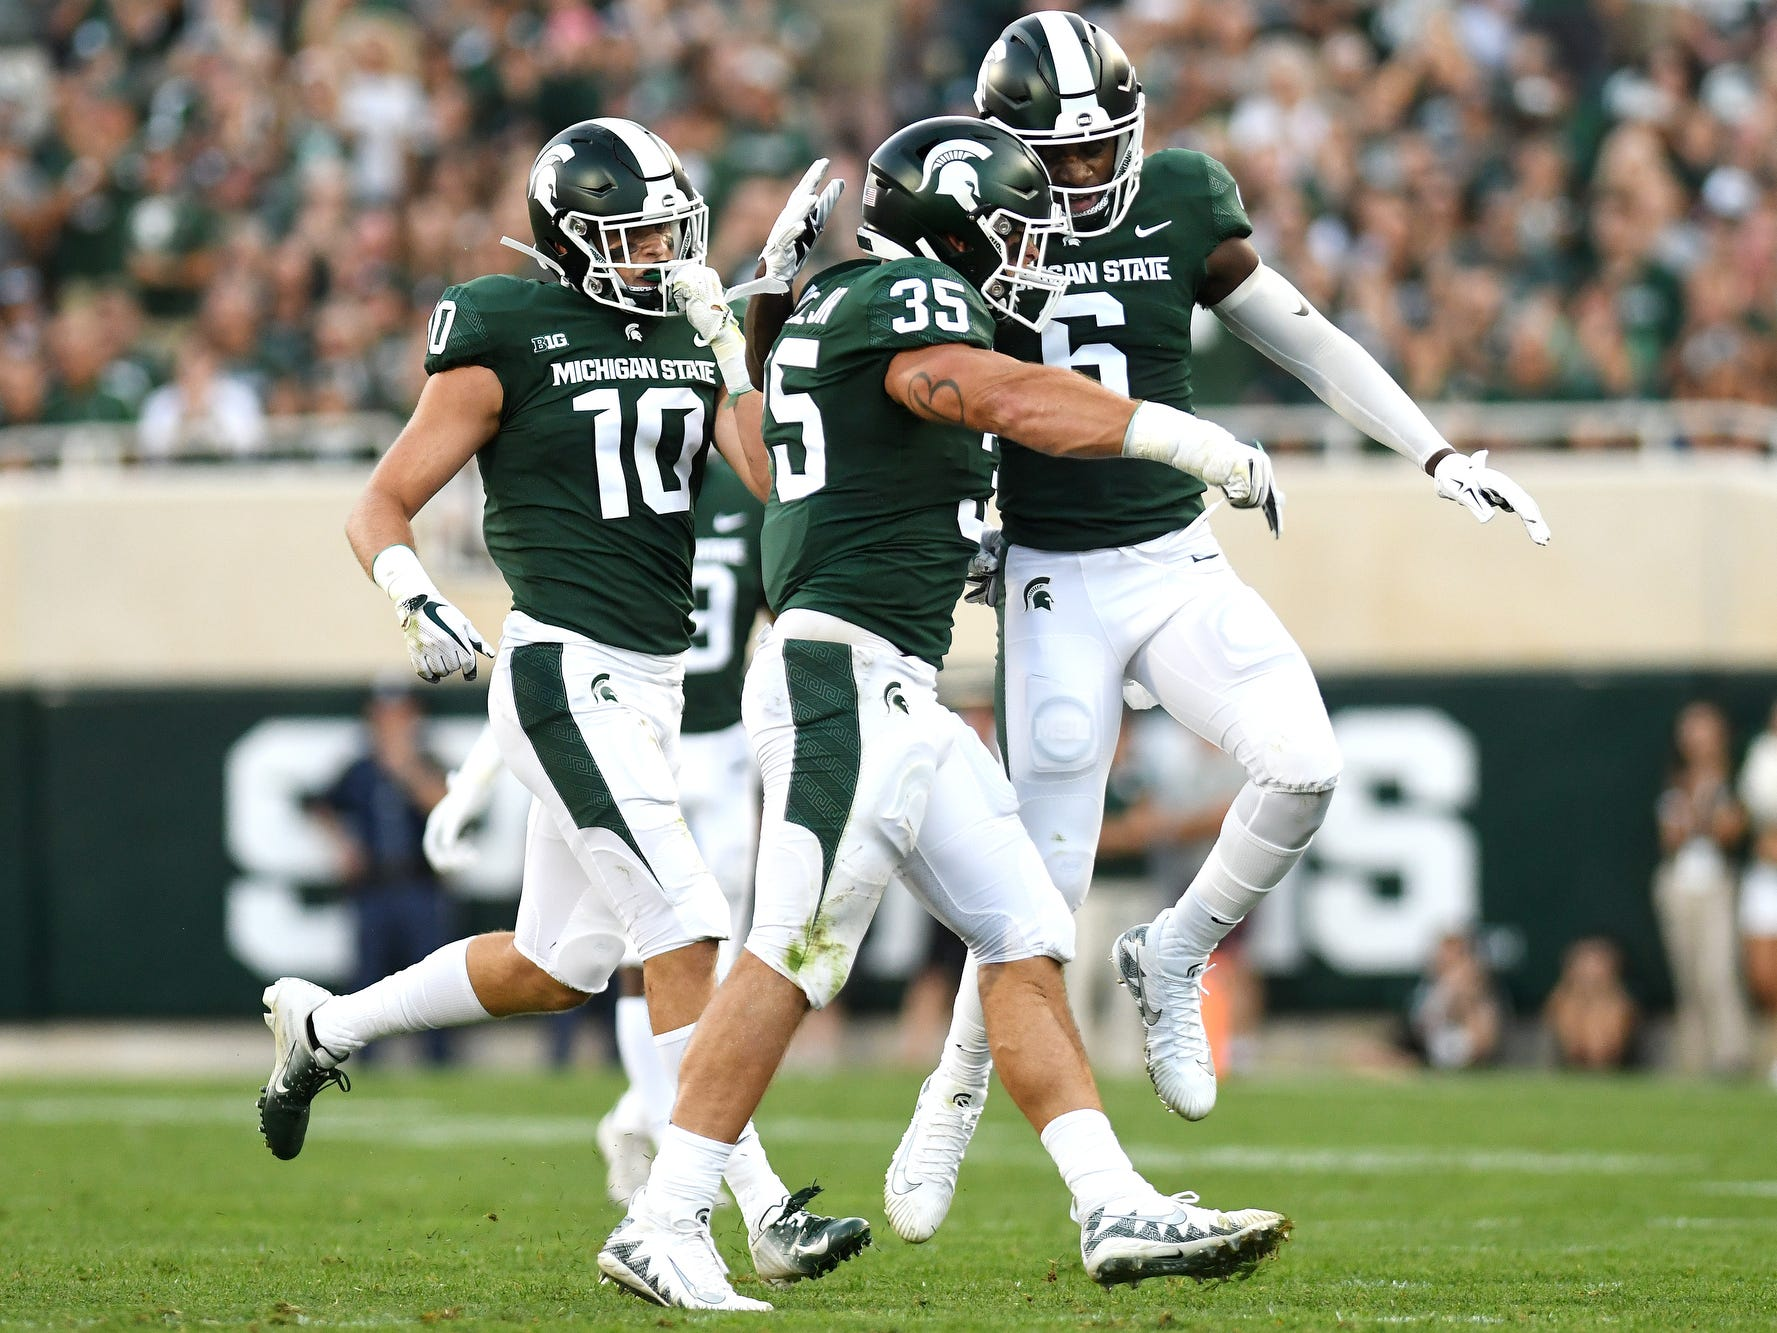 Michigan State's Joe Bachie, center, celebrates with teammates David Dowell, right, and Matt Morrissey after a stop during the first quarter on Friday, Aug. 31, 2018, at Spartan Stadium in East Lansing.